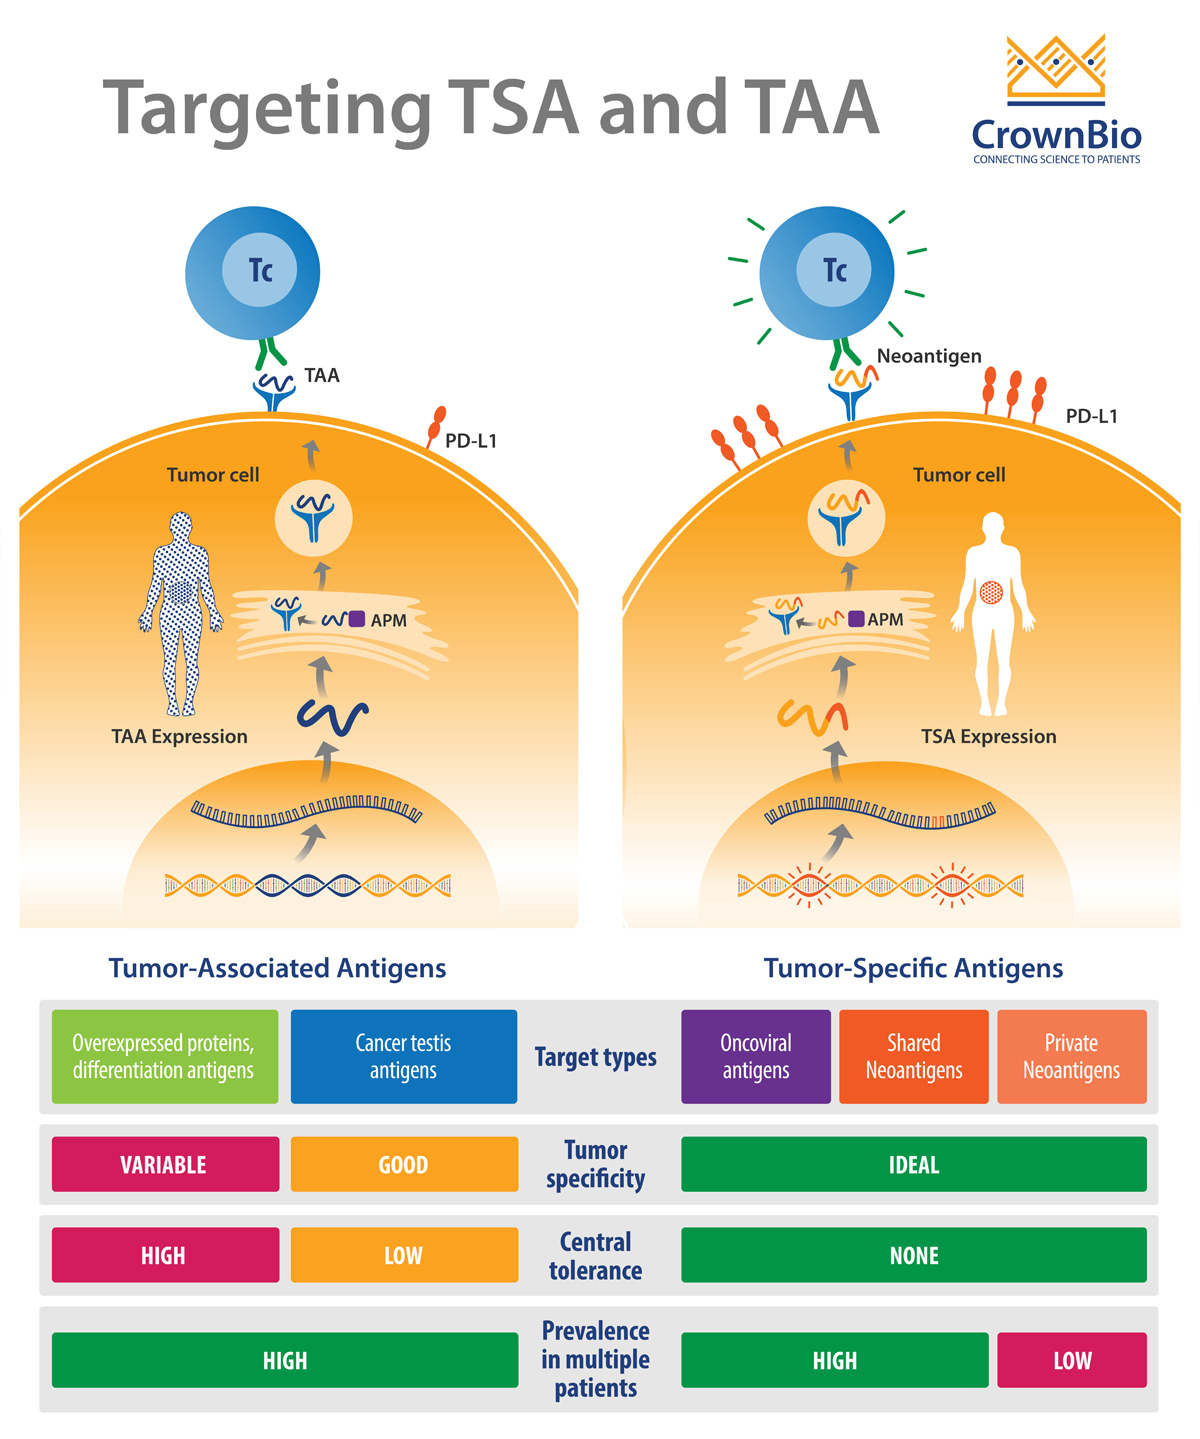 Targeting Tumor-Associated Antigens and Tumor-Specific Antigens